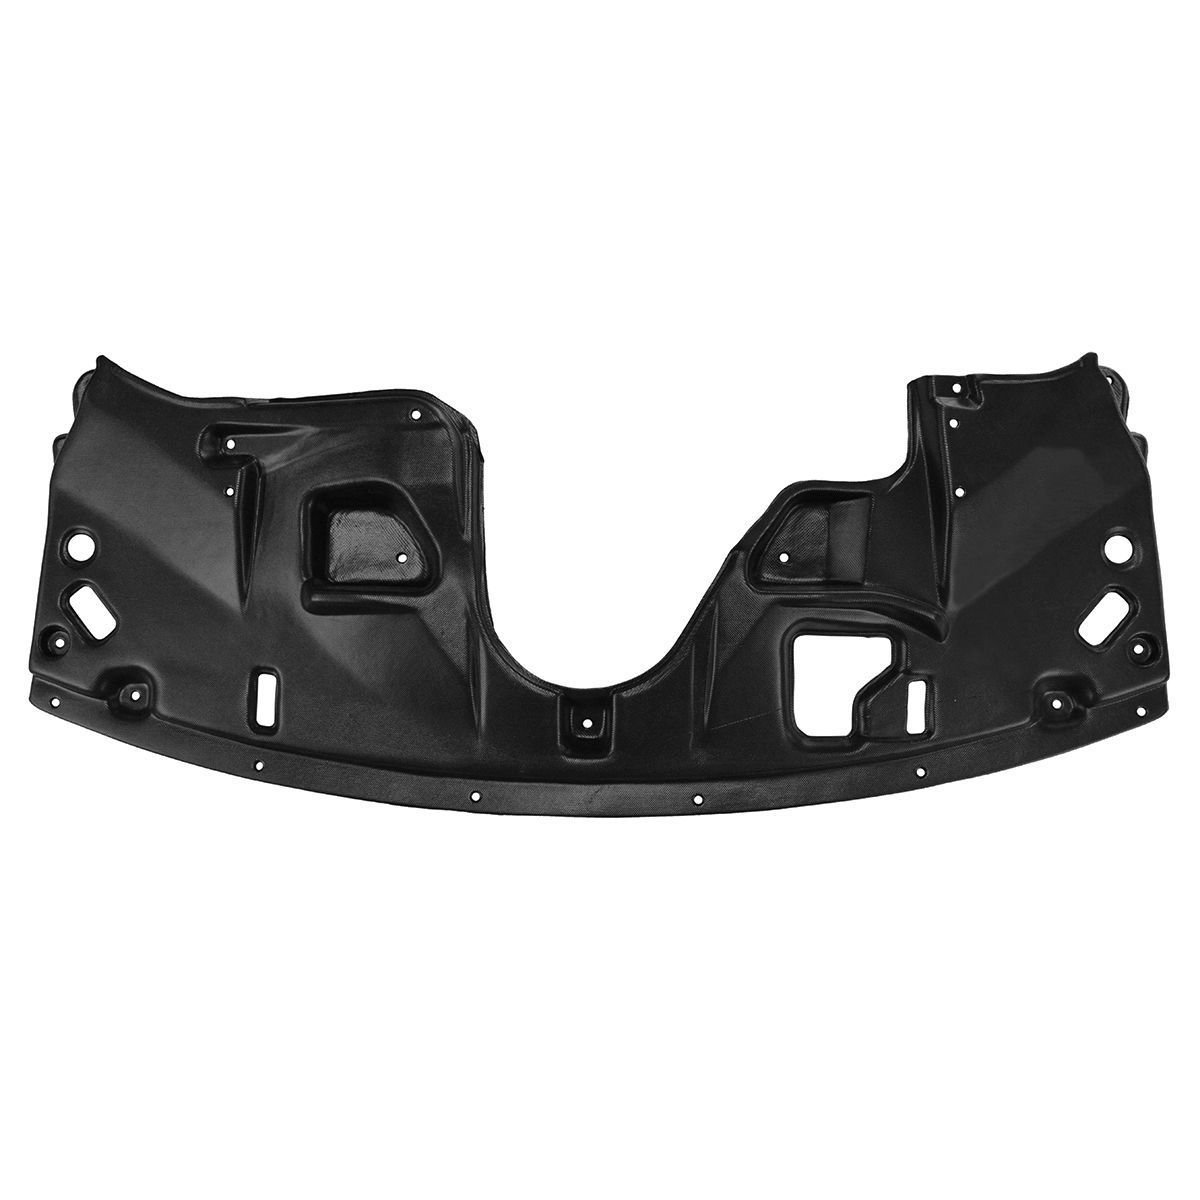 Partslink Number HO1228104 OE Replacement Honda Odyssey Lower Engine Cover